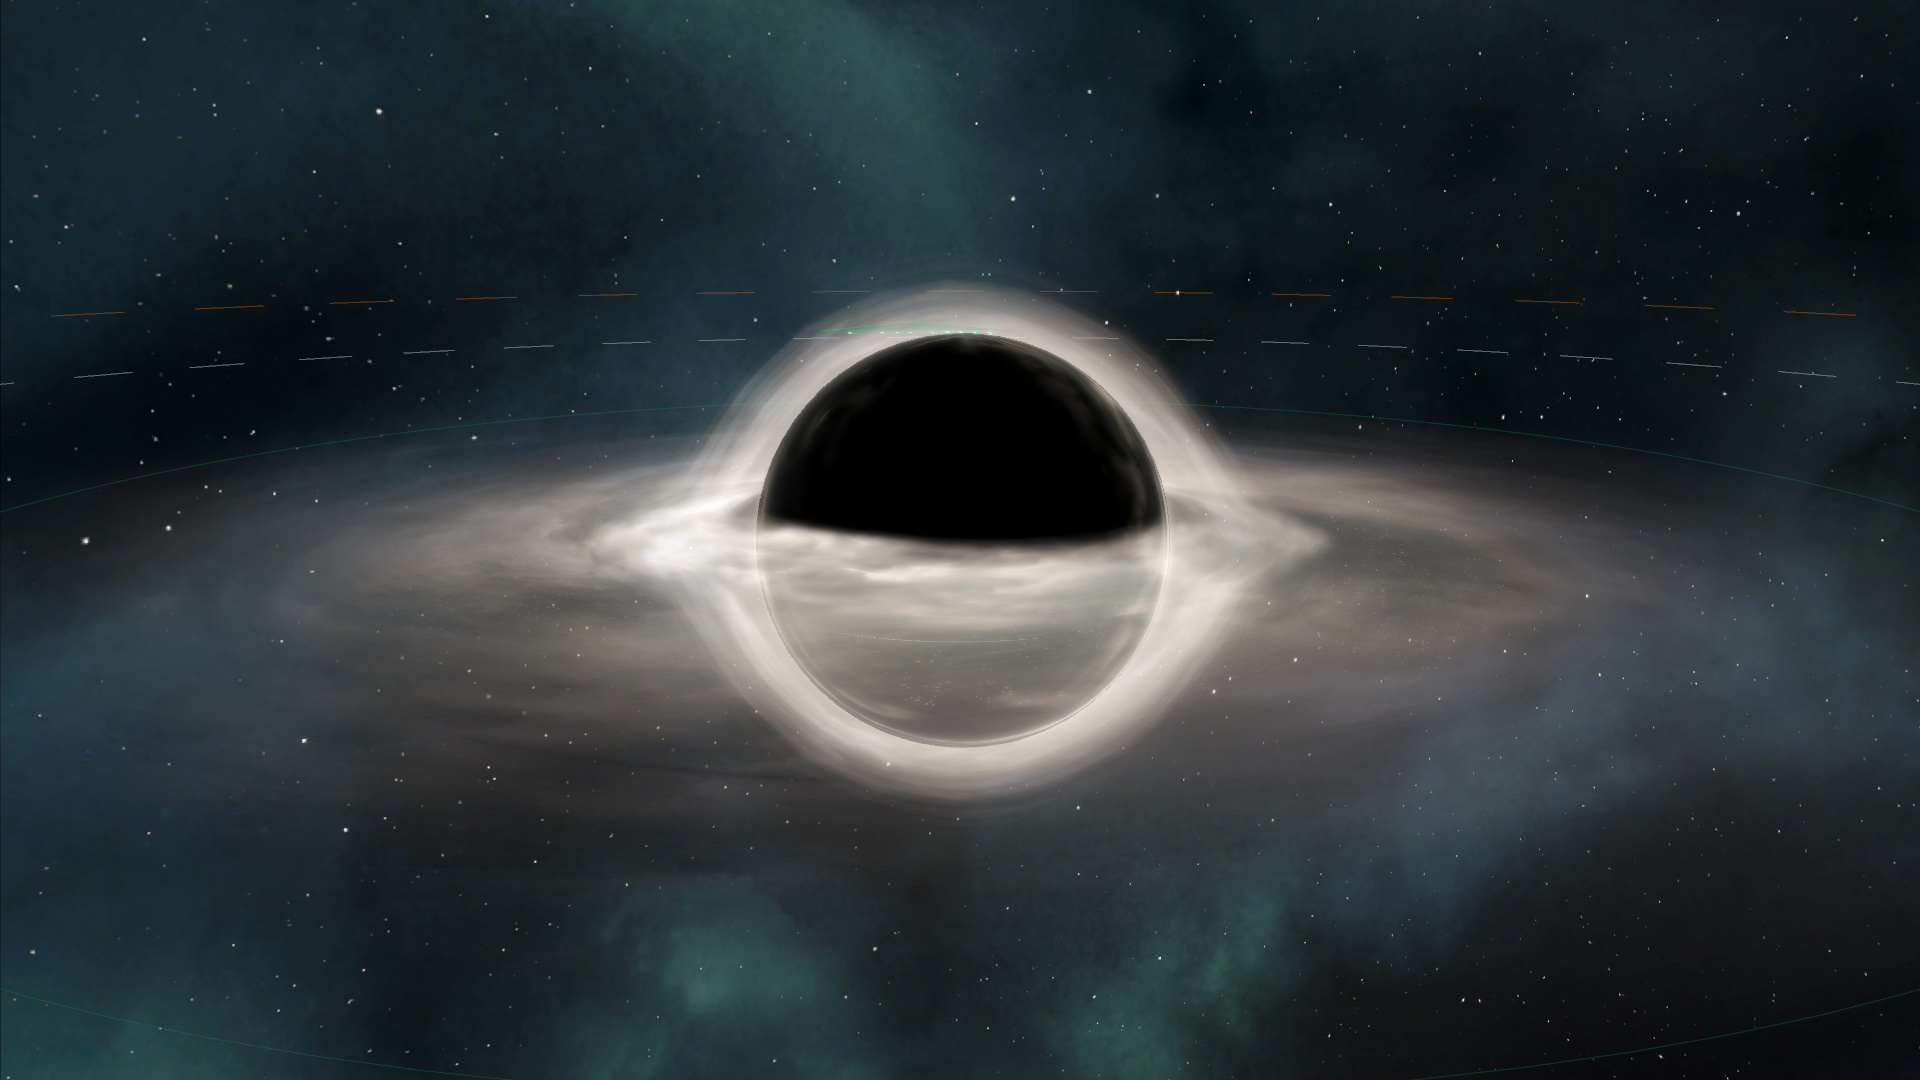 New Black holes | Paradox Interactive Forums